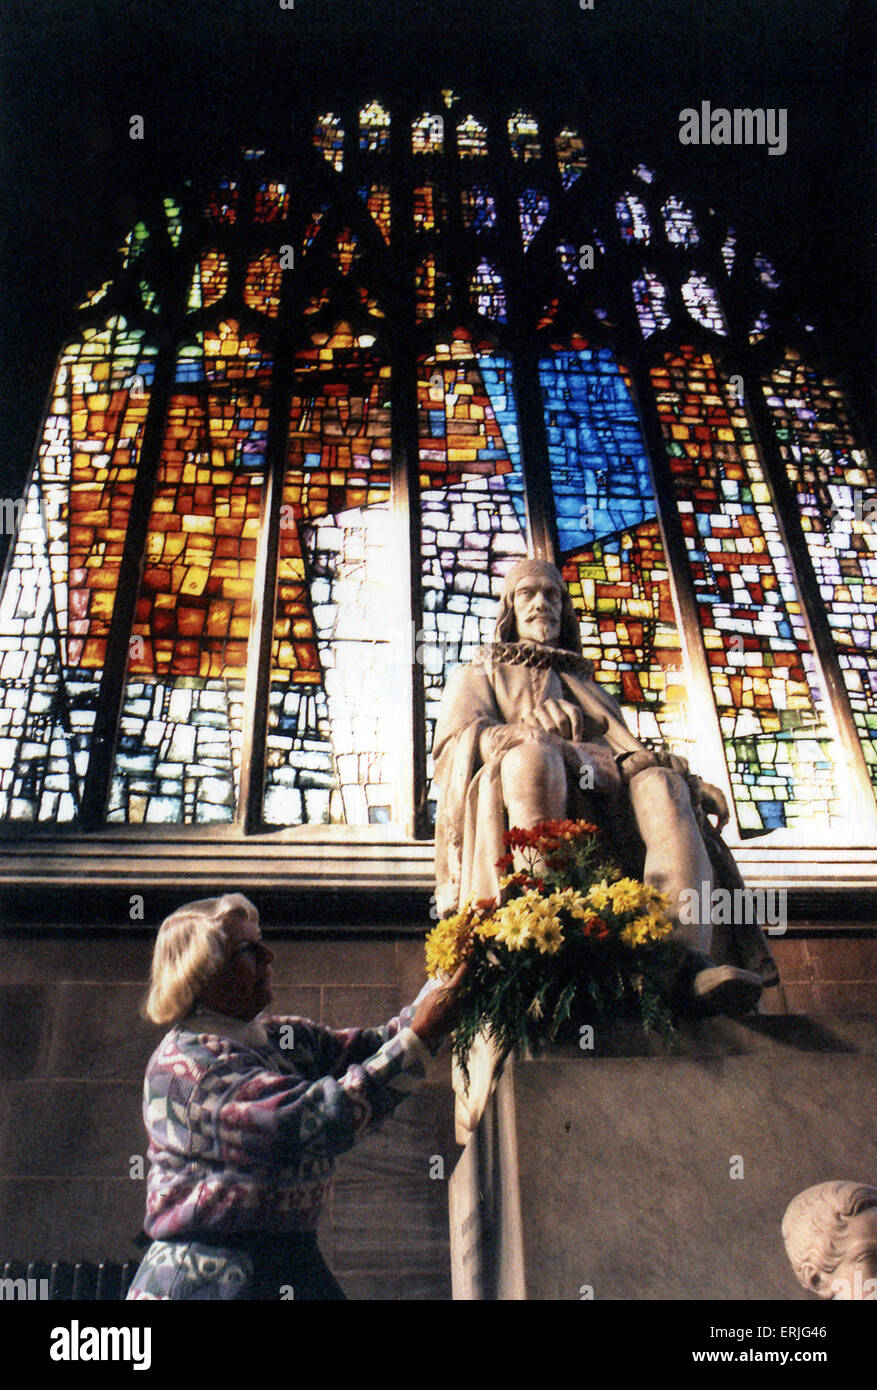 Joan Gage, of Stretford, puts flowers in front of one of the windows at Manchester Cathedral, 9th November 1995. - Stock Image